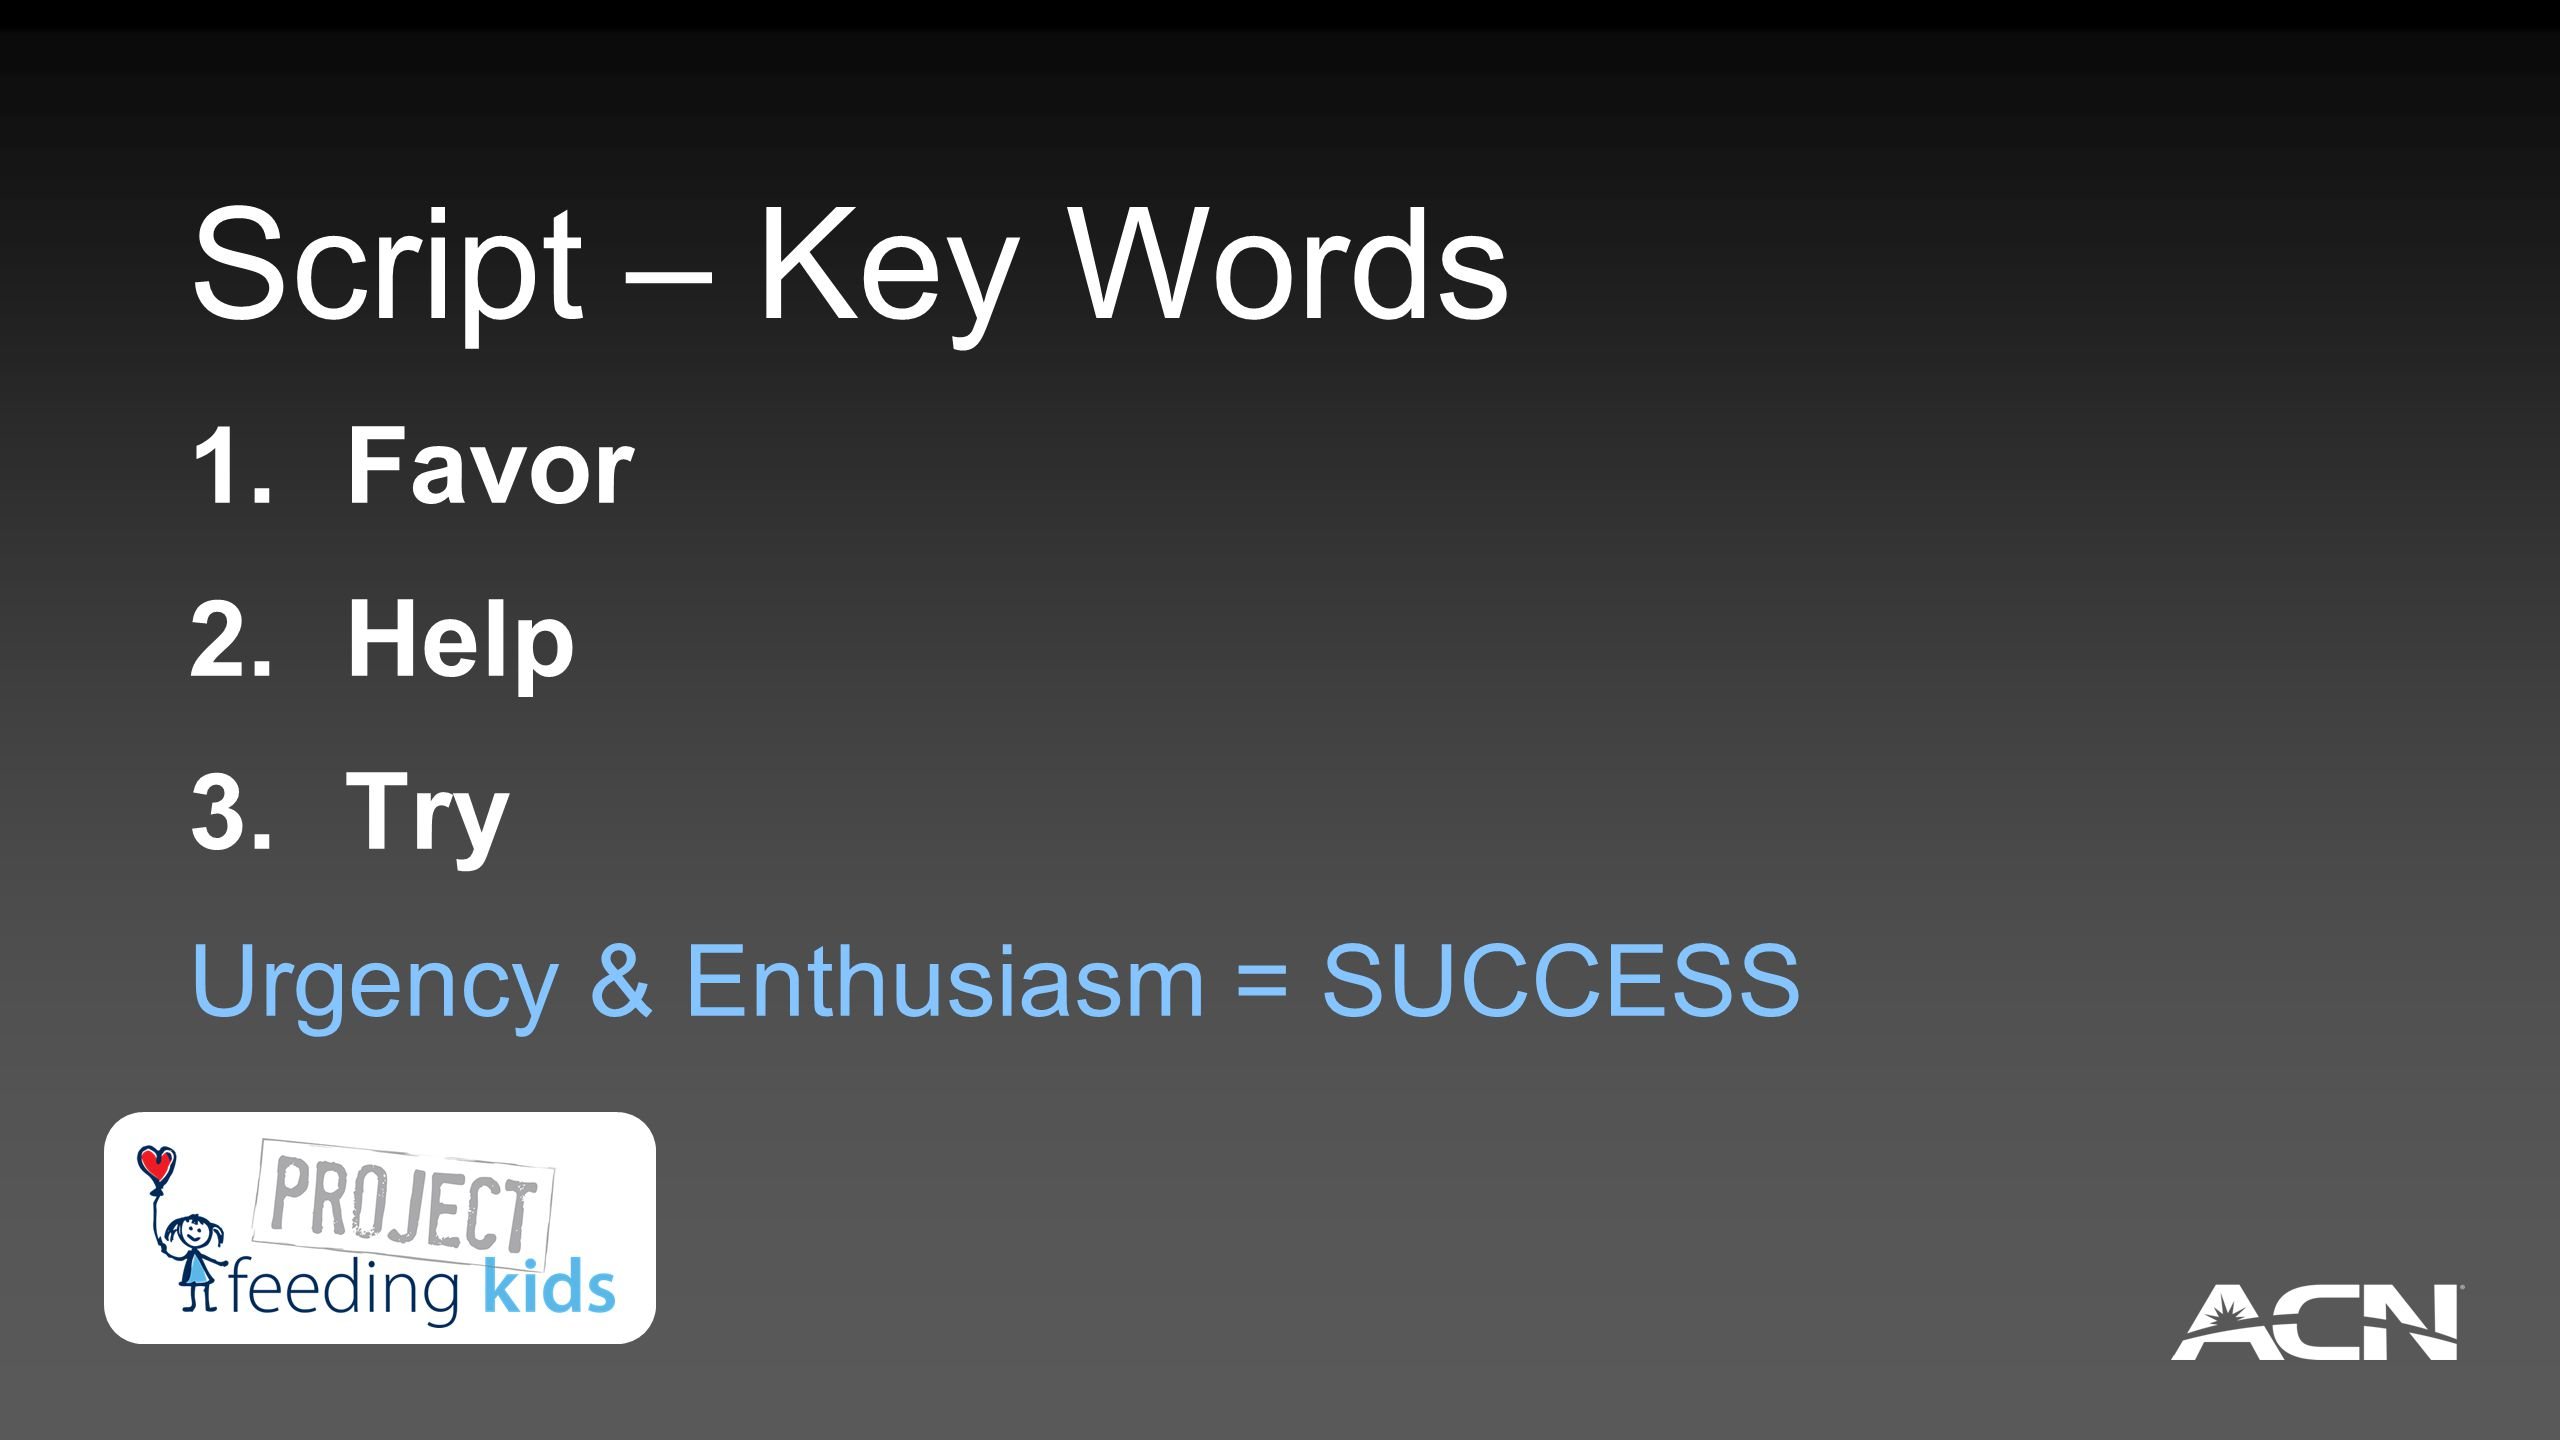 Script – Key Words 1. Favor 2. Help 3. Try Urgency & Enthusiasm = SUCCESS